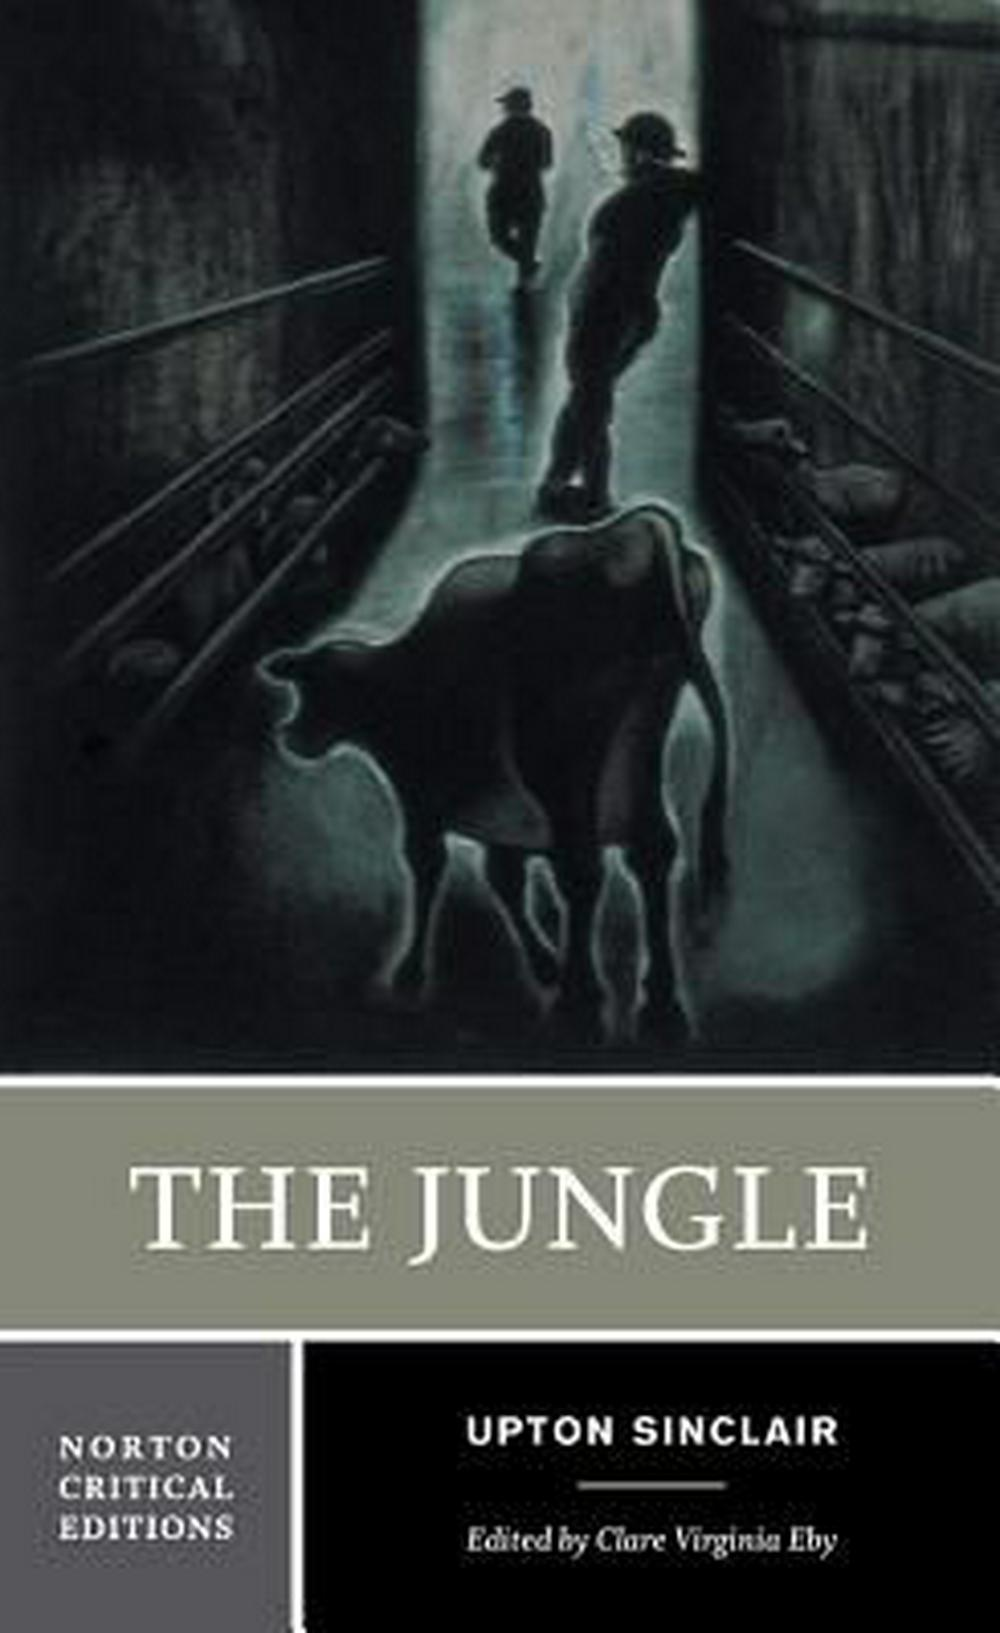 an analysis of socialist transformation in the jungle by upton sinclair It may be a stretch to call the jungle a coming-of-age novel because those usually star child protagonists still, we think it's appropriate here because the whole book is dedicated to jurgis's transformation from childlike, naive peasant to mature, productive socialist speaking of socialism, since.